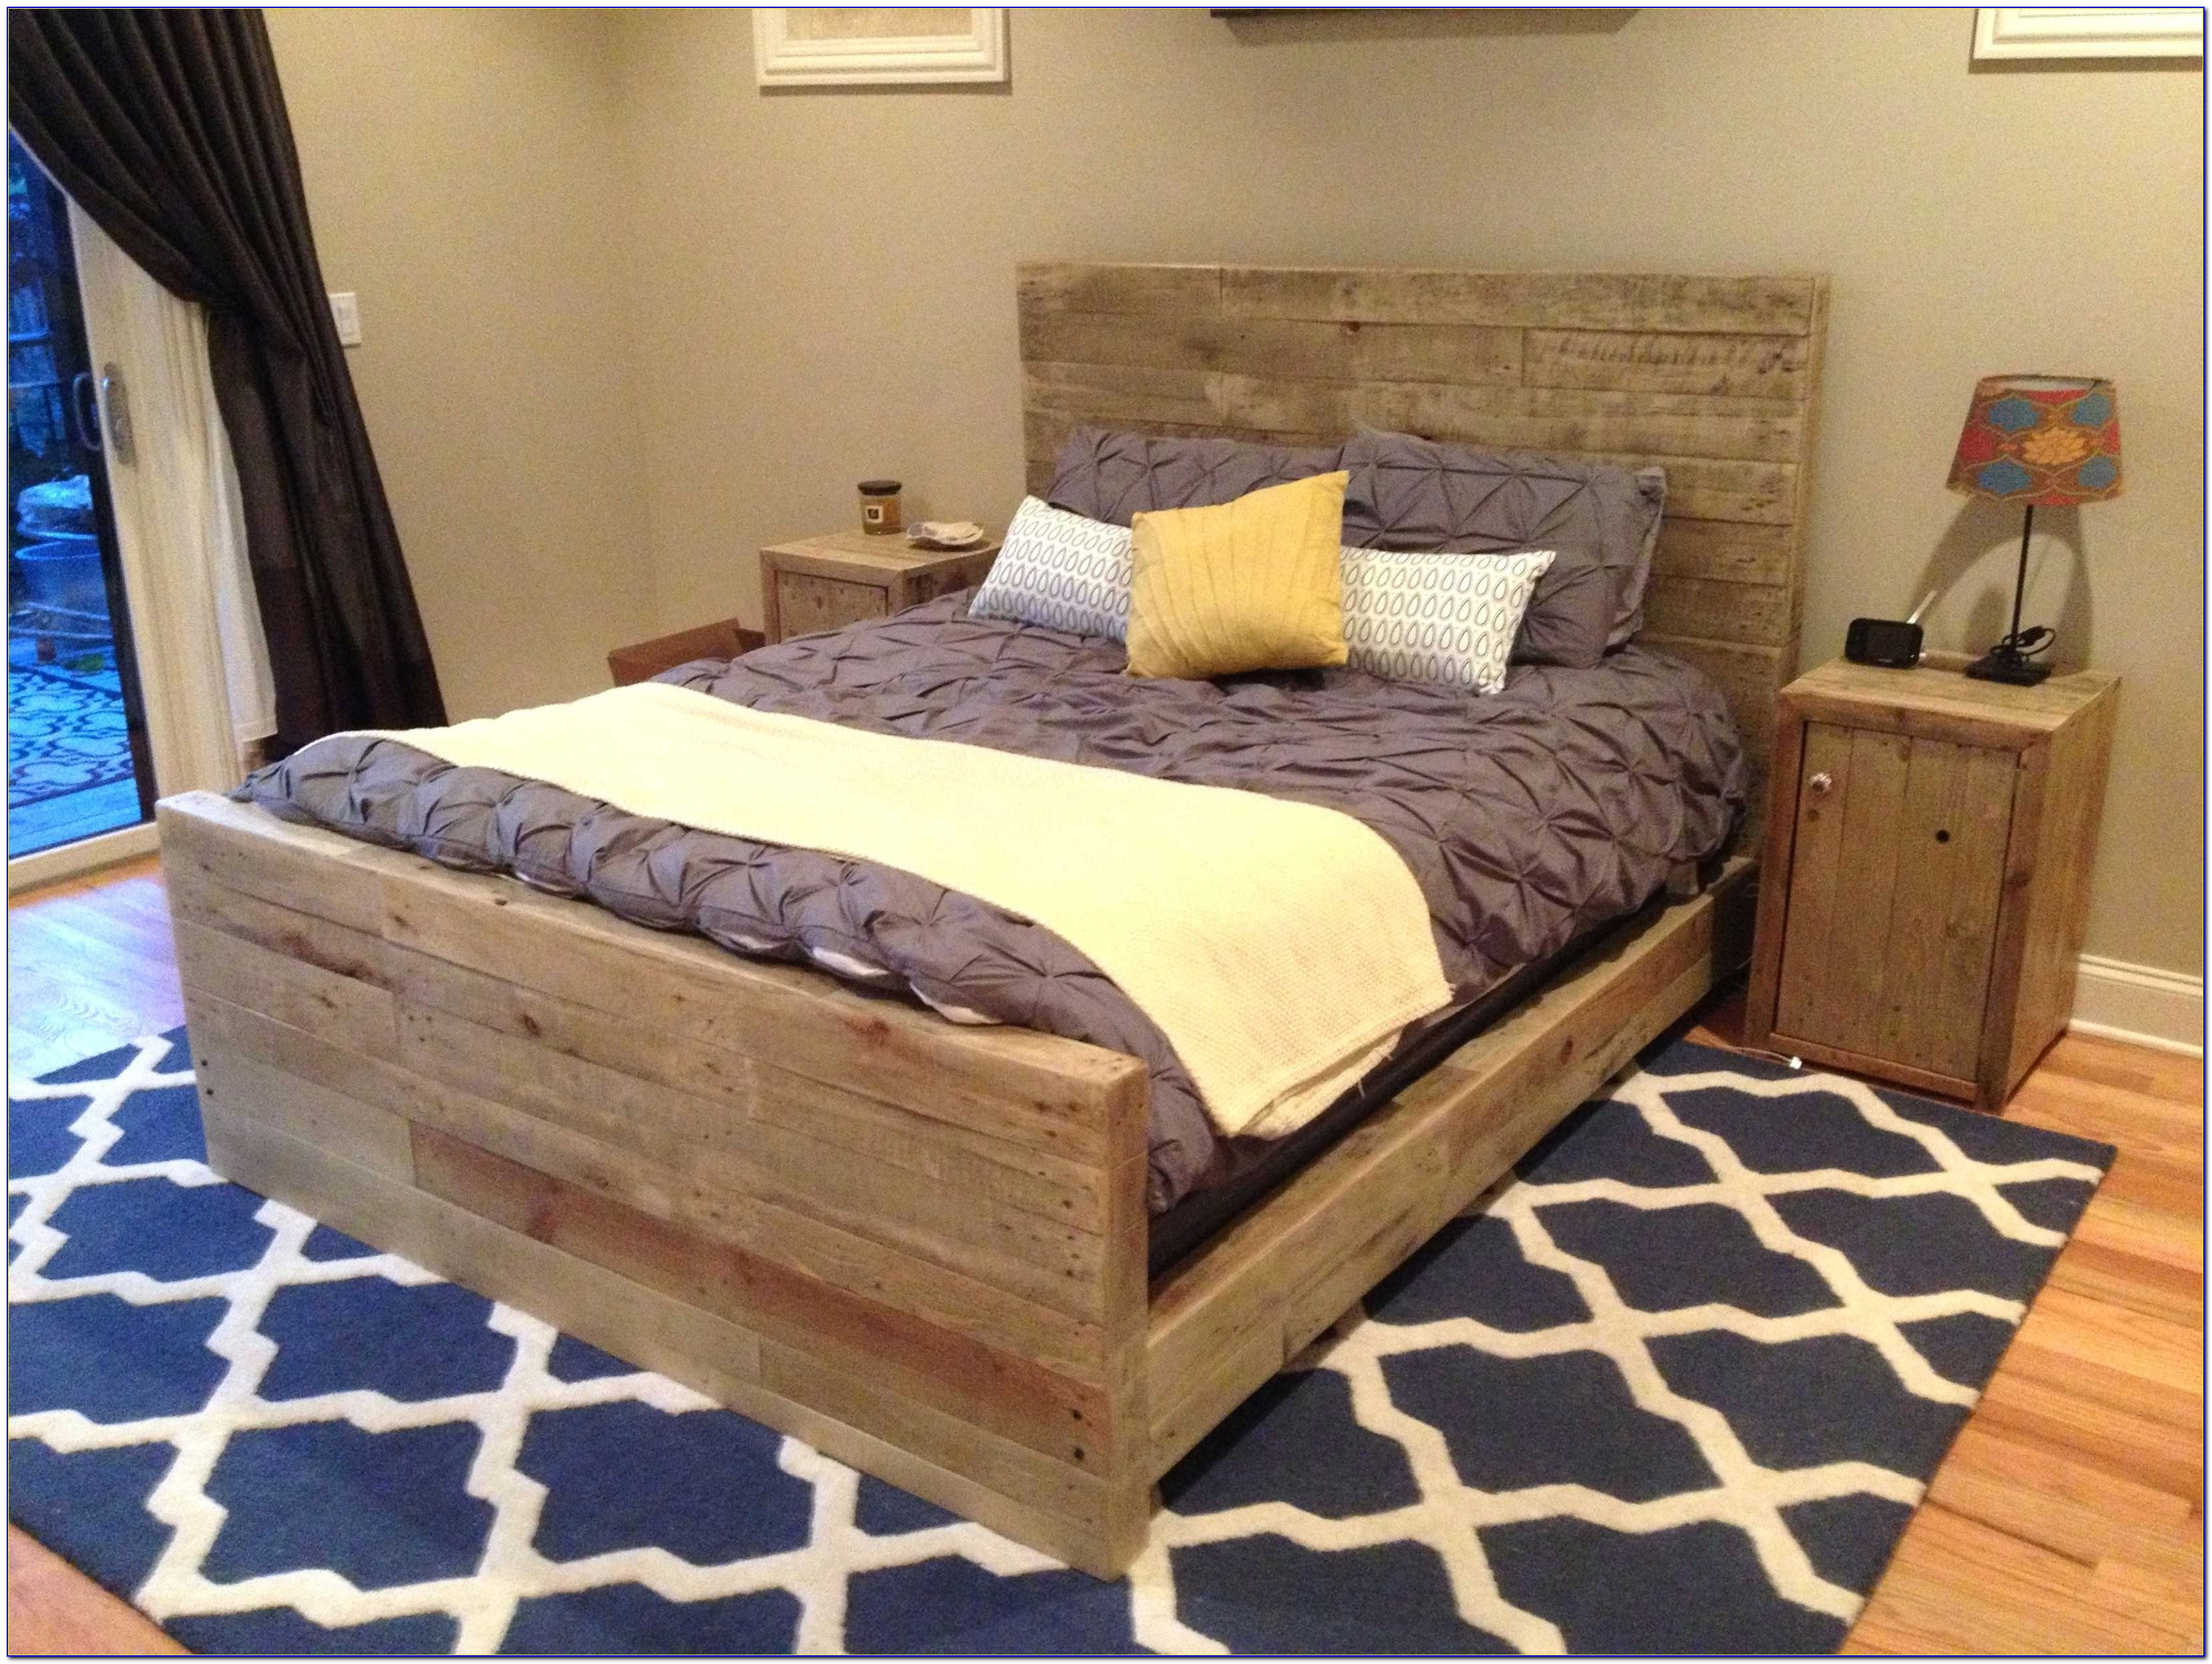 King Size Headboard And Footboard Dimensions